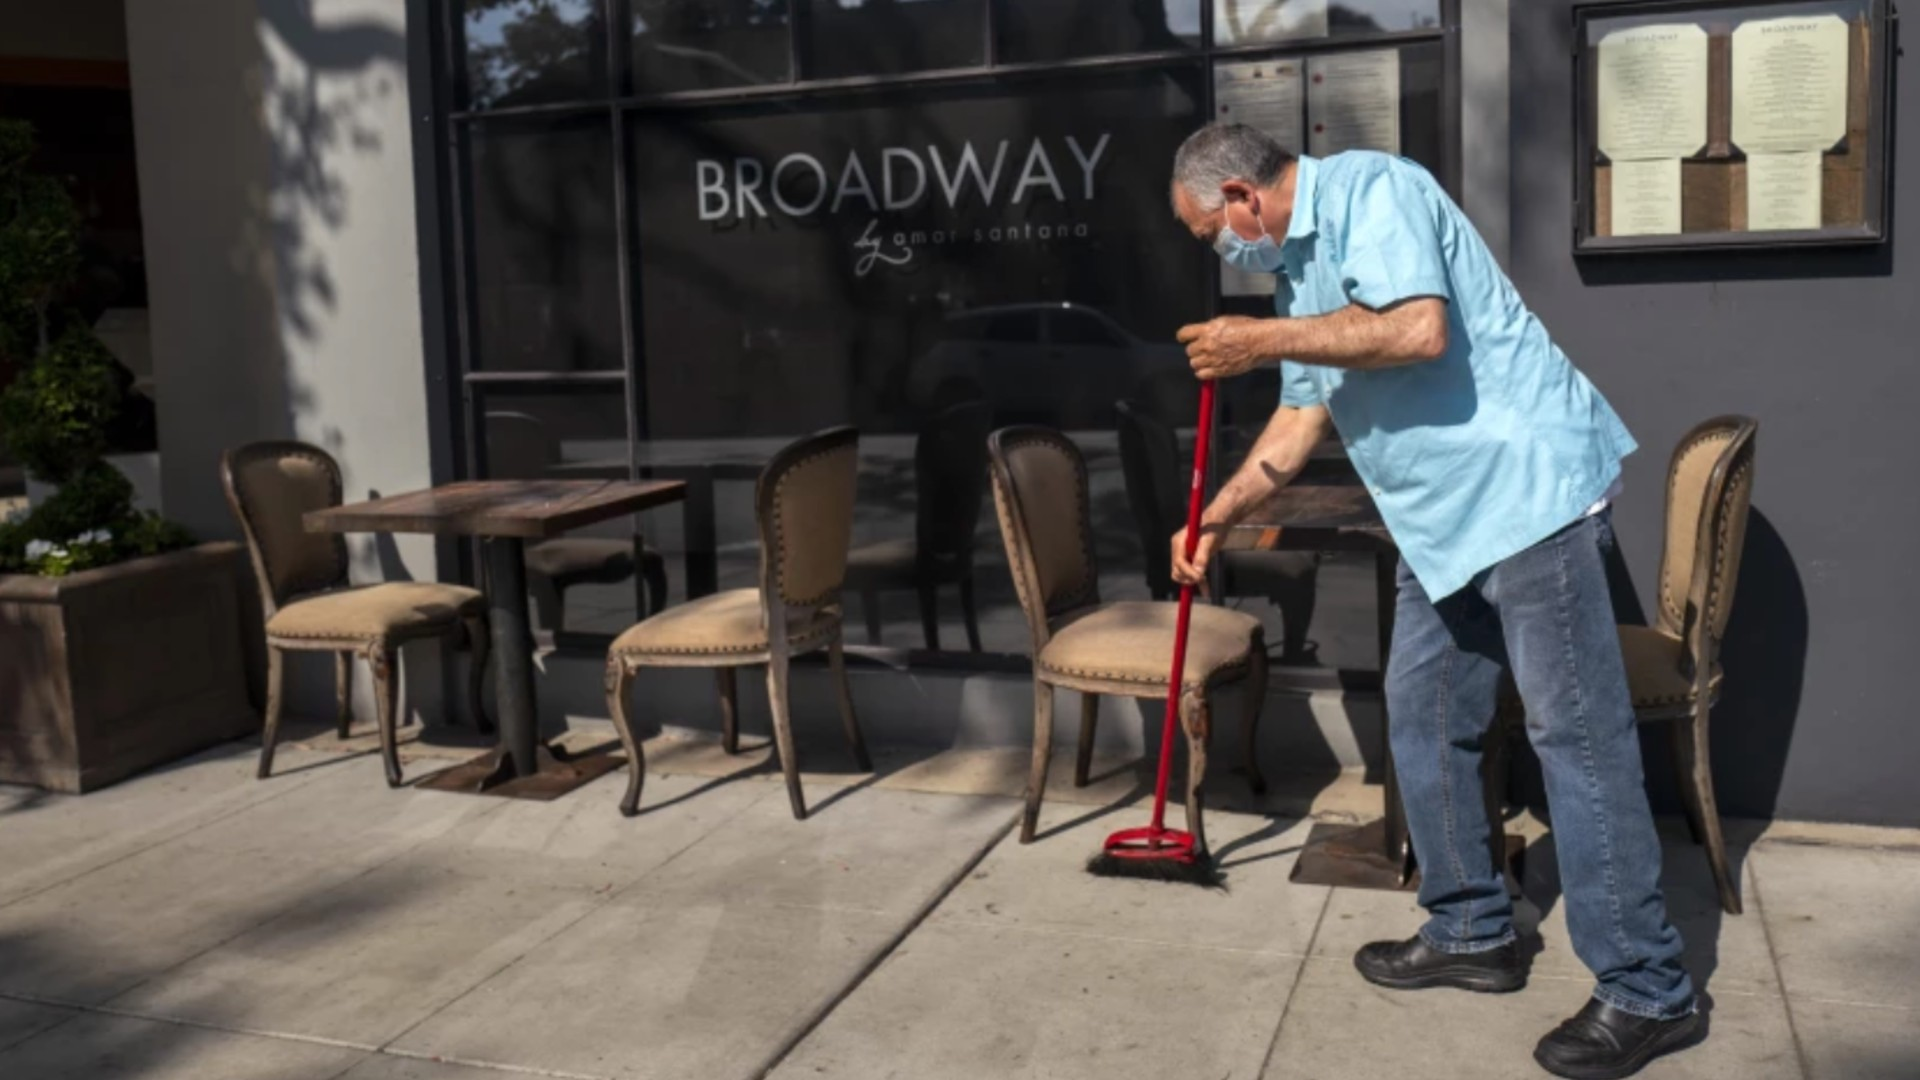 Javier Garcia wears a mask in Laguna Beach while sweeping outside Broadway by Amar Santana in May. Orange County has seen a surge in coronavirus cases this summer.(Francine Orr / Los Angeles Times)